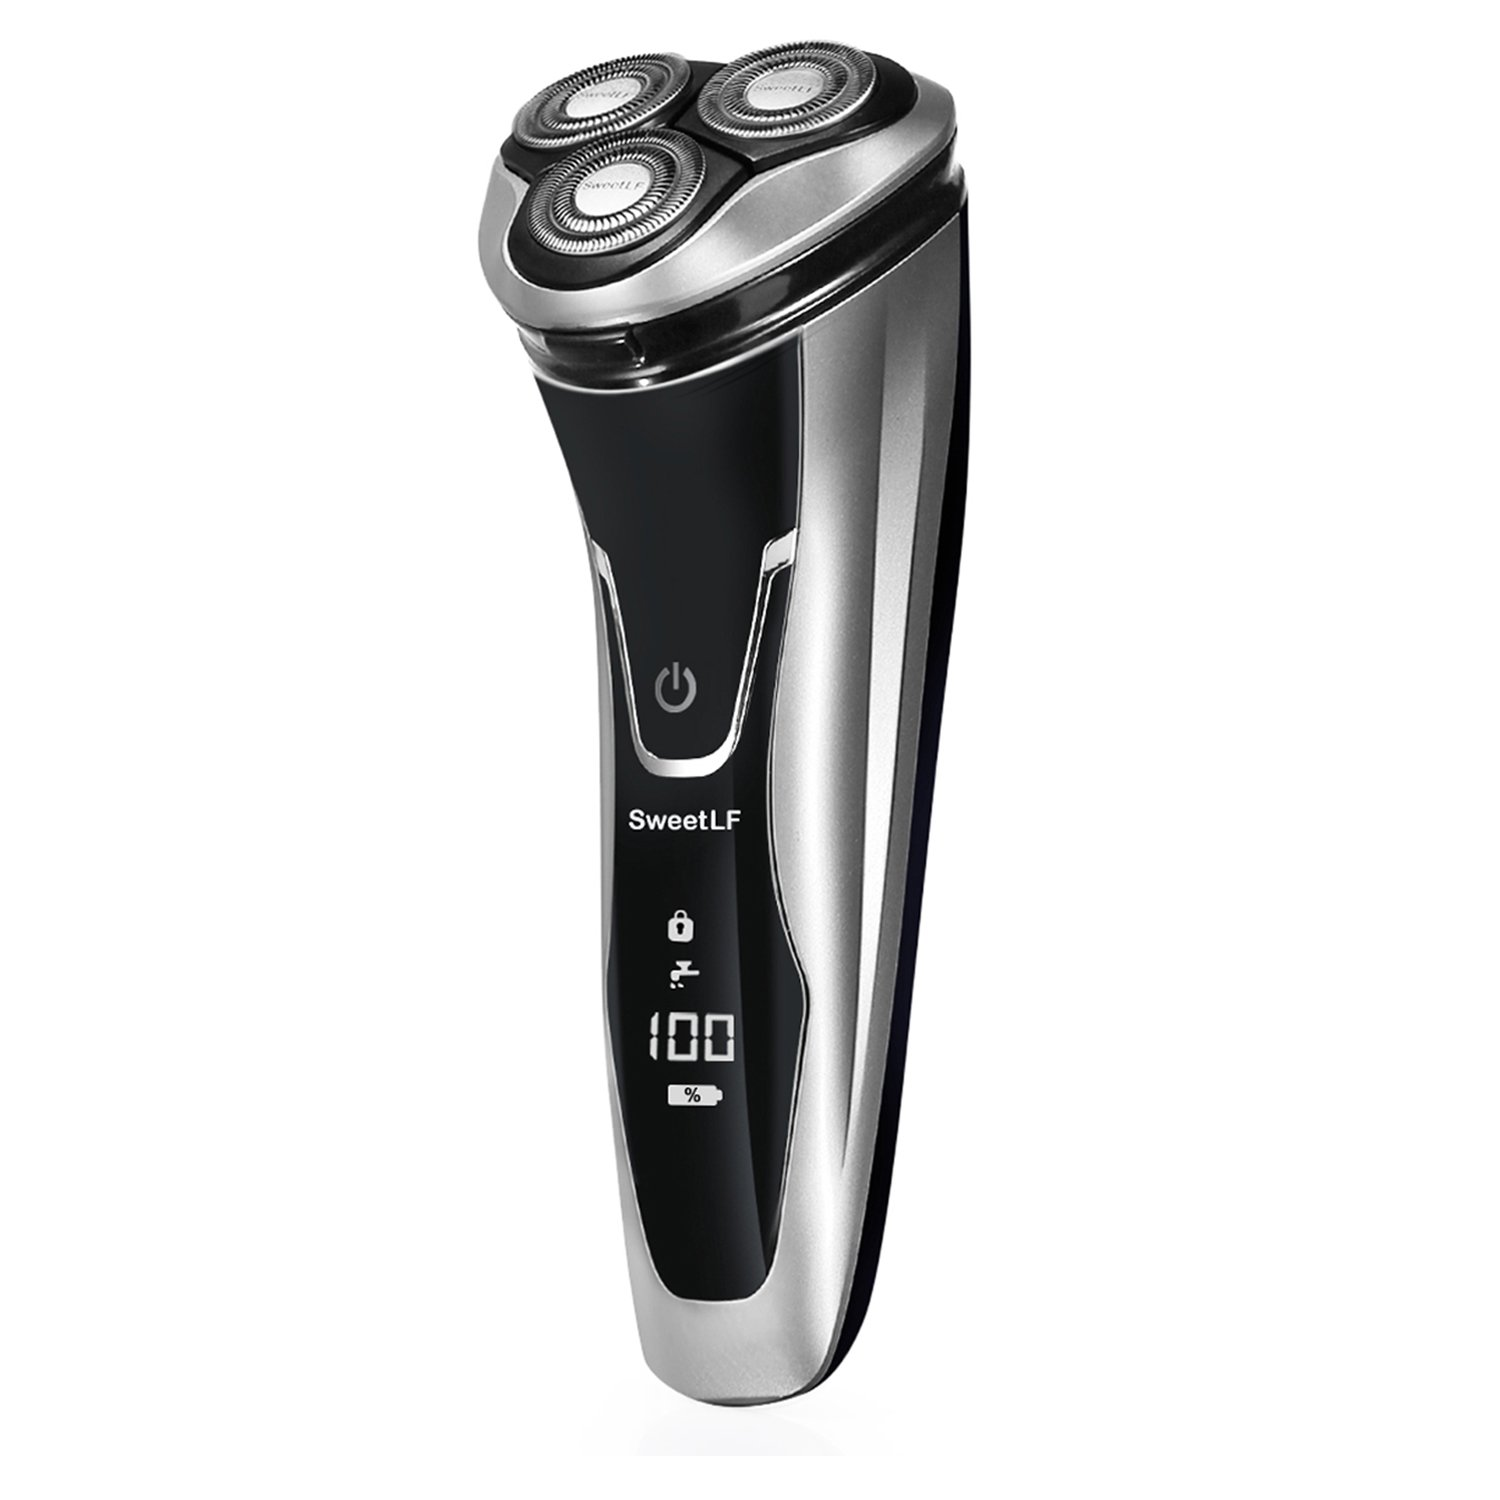 SweetLF Electric Shaver Razor for Men 2 in 1 Beard Trimmer Wet & Dry Waterproof Electric Razor Mens Rotary Shaver USB Quick Rechargeable Shaver for Men